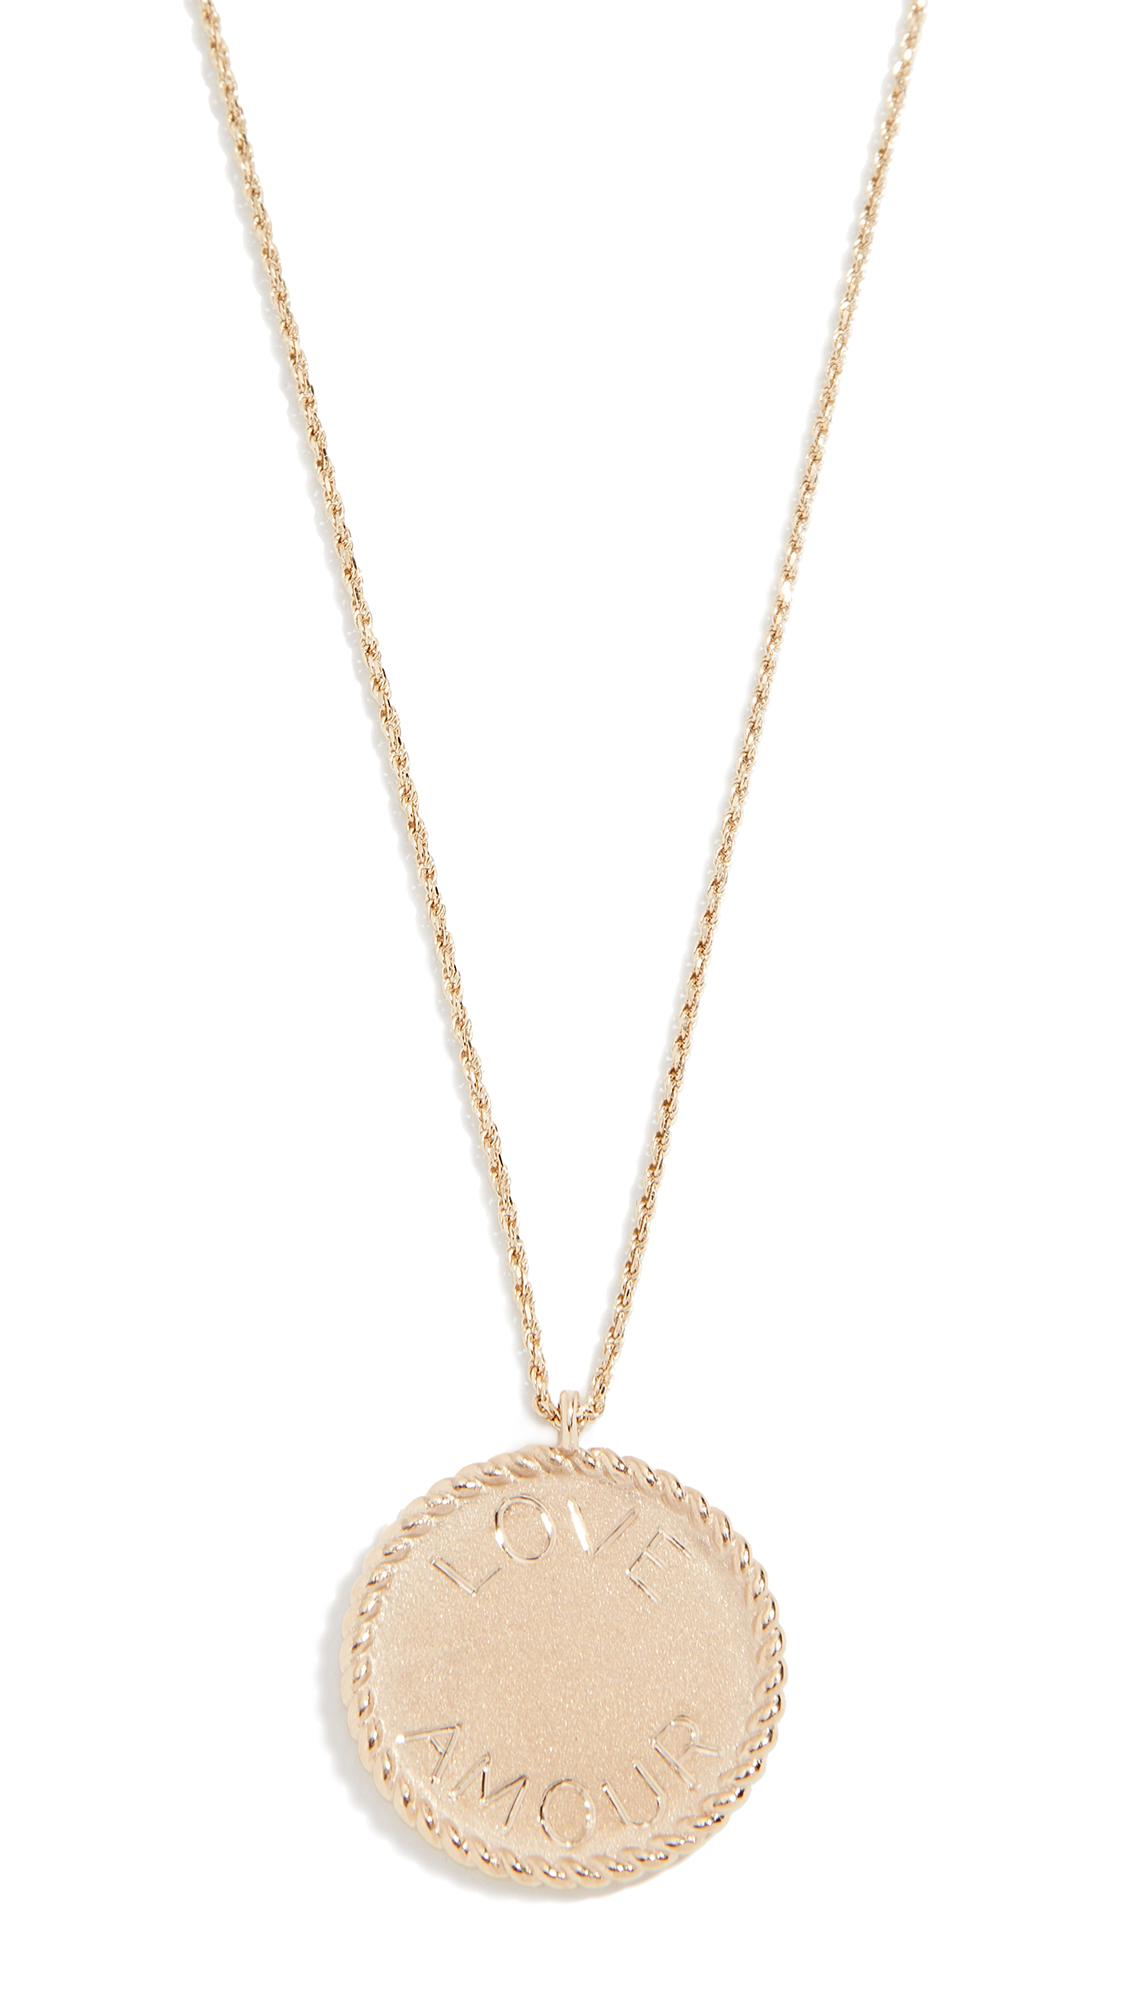 Ariel Gordon Jewelry 14K Imperial Disc Love Amour Necklace In Yellow Gold